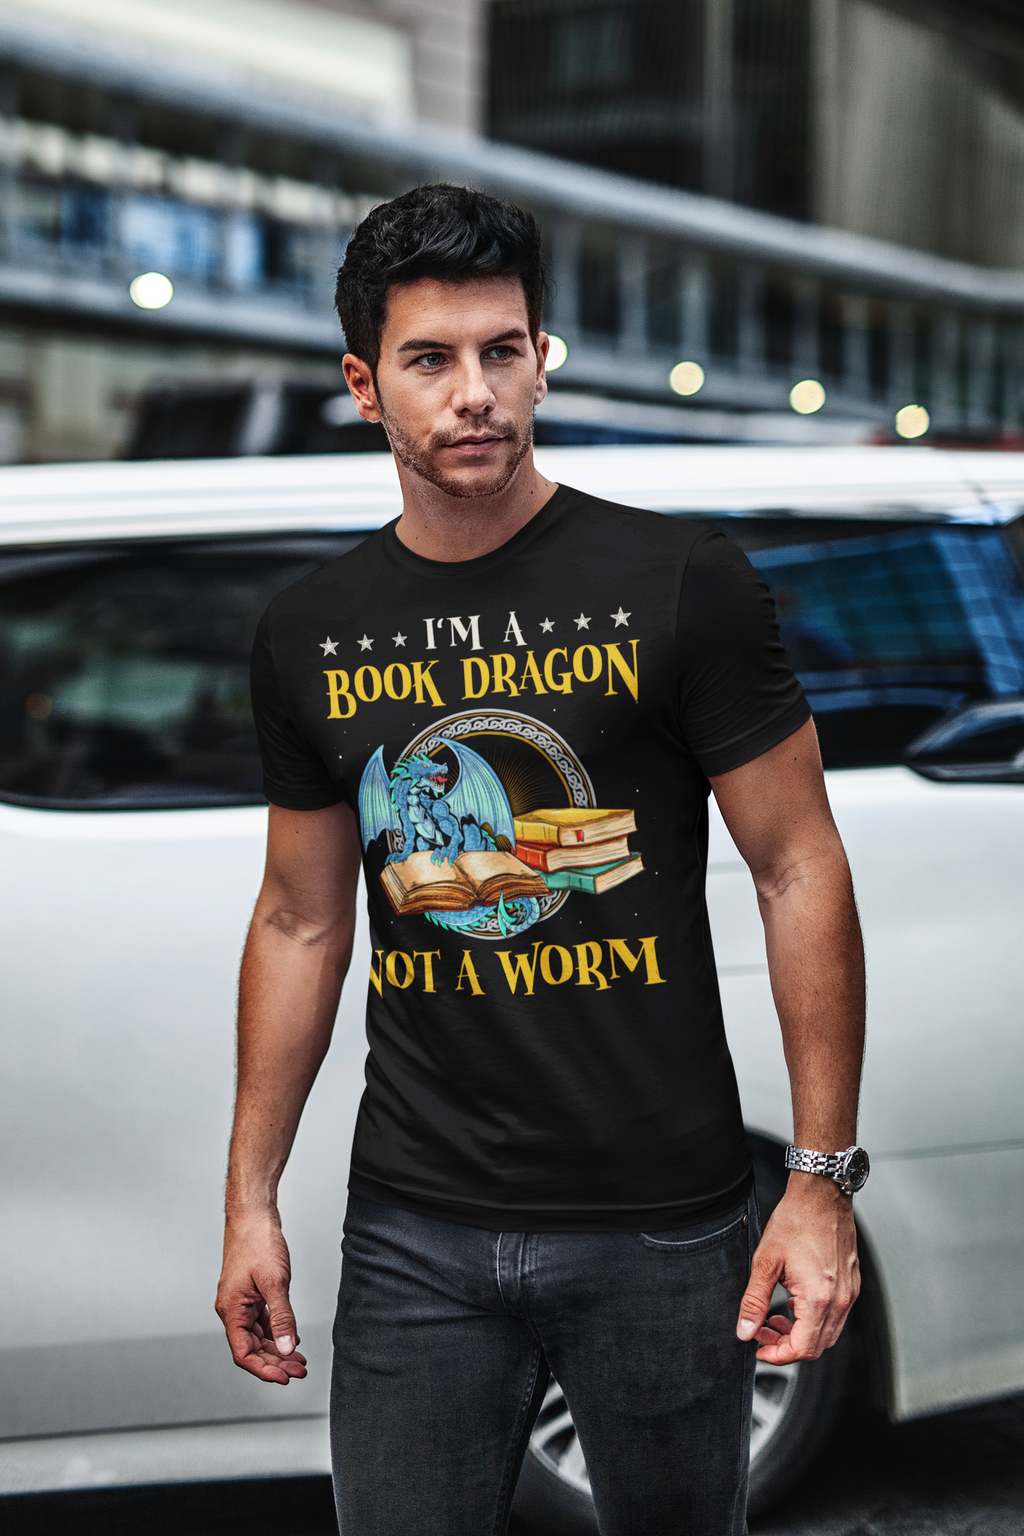 Book Dragon - Short-Sleeve Men's T-Shirt - Bookish Merchandise - Gift for Booklovers - Book Merch - Reading Accessories - Bookacy - Books and More